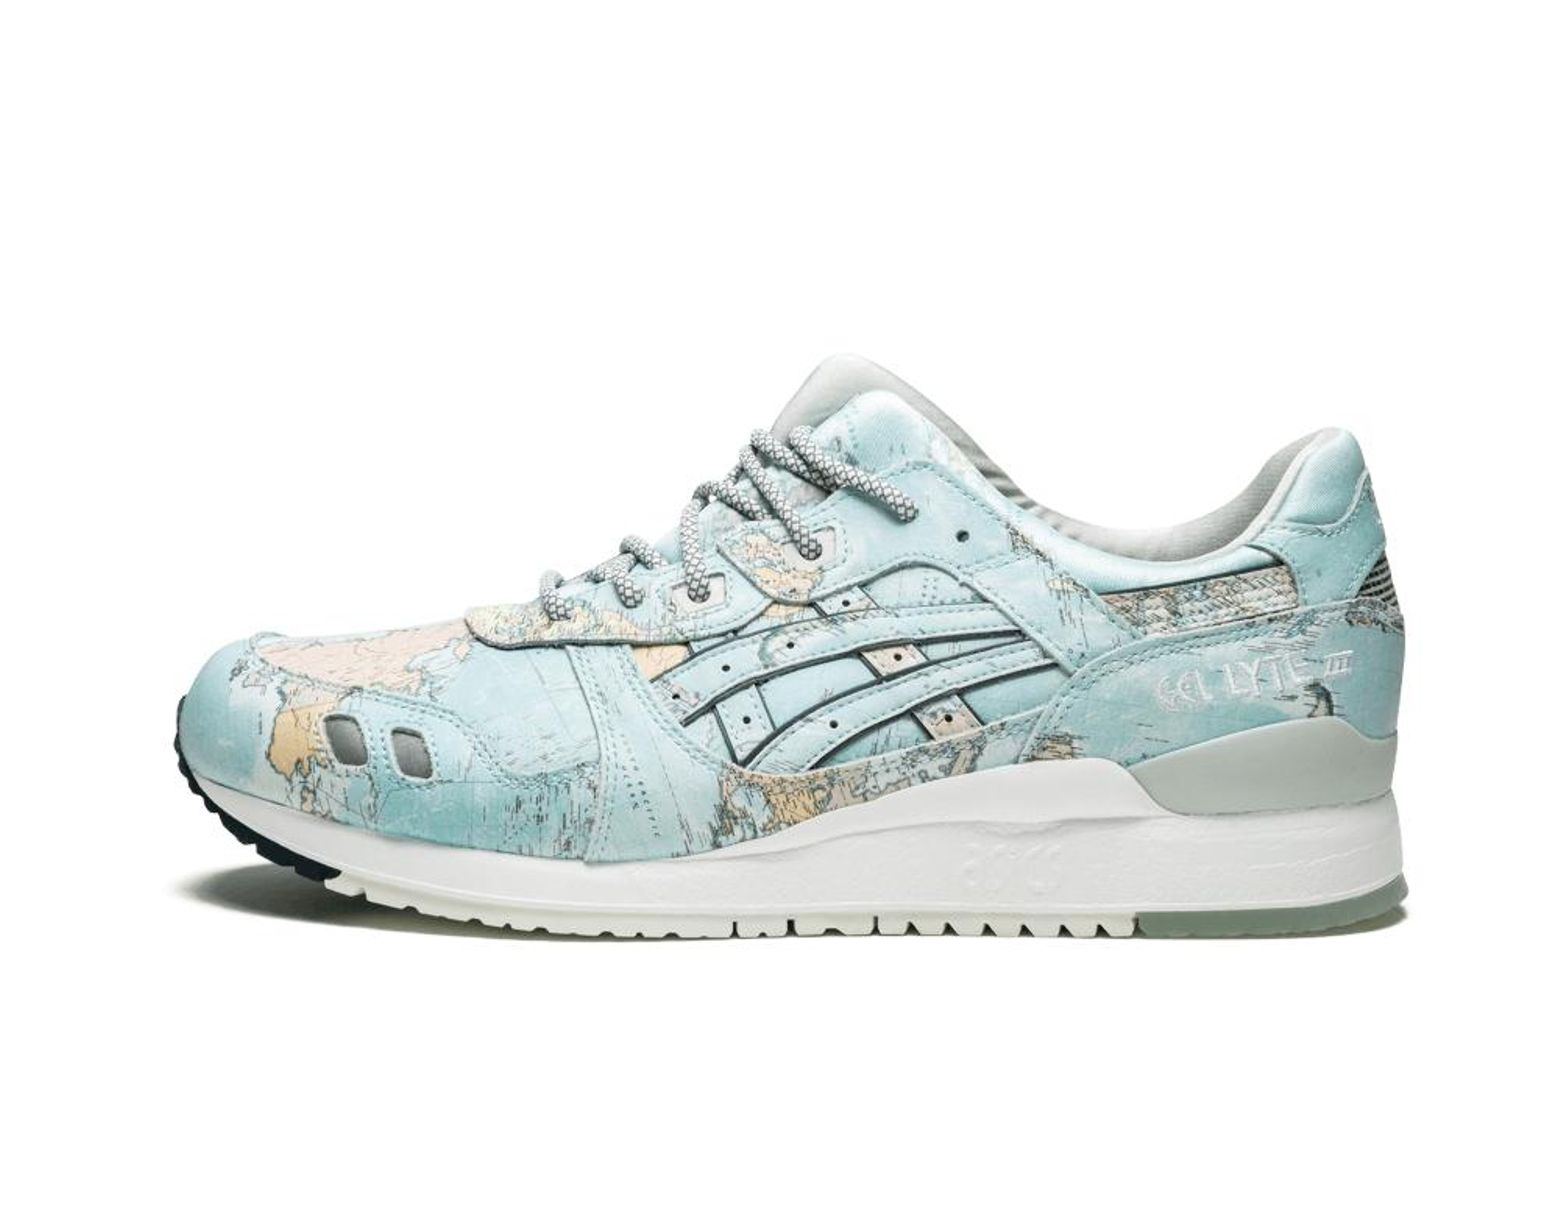 a262d85c Lyst - Asics Gel Lyte Iii in Blue for Men - Save 47%